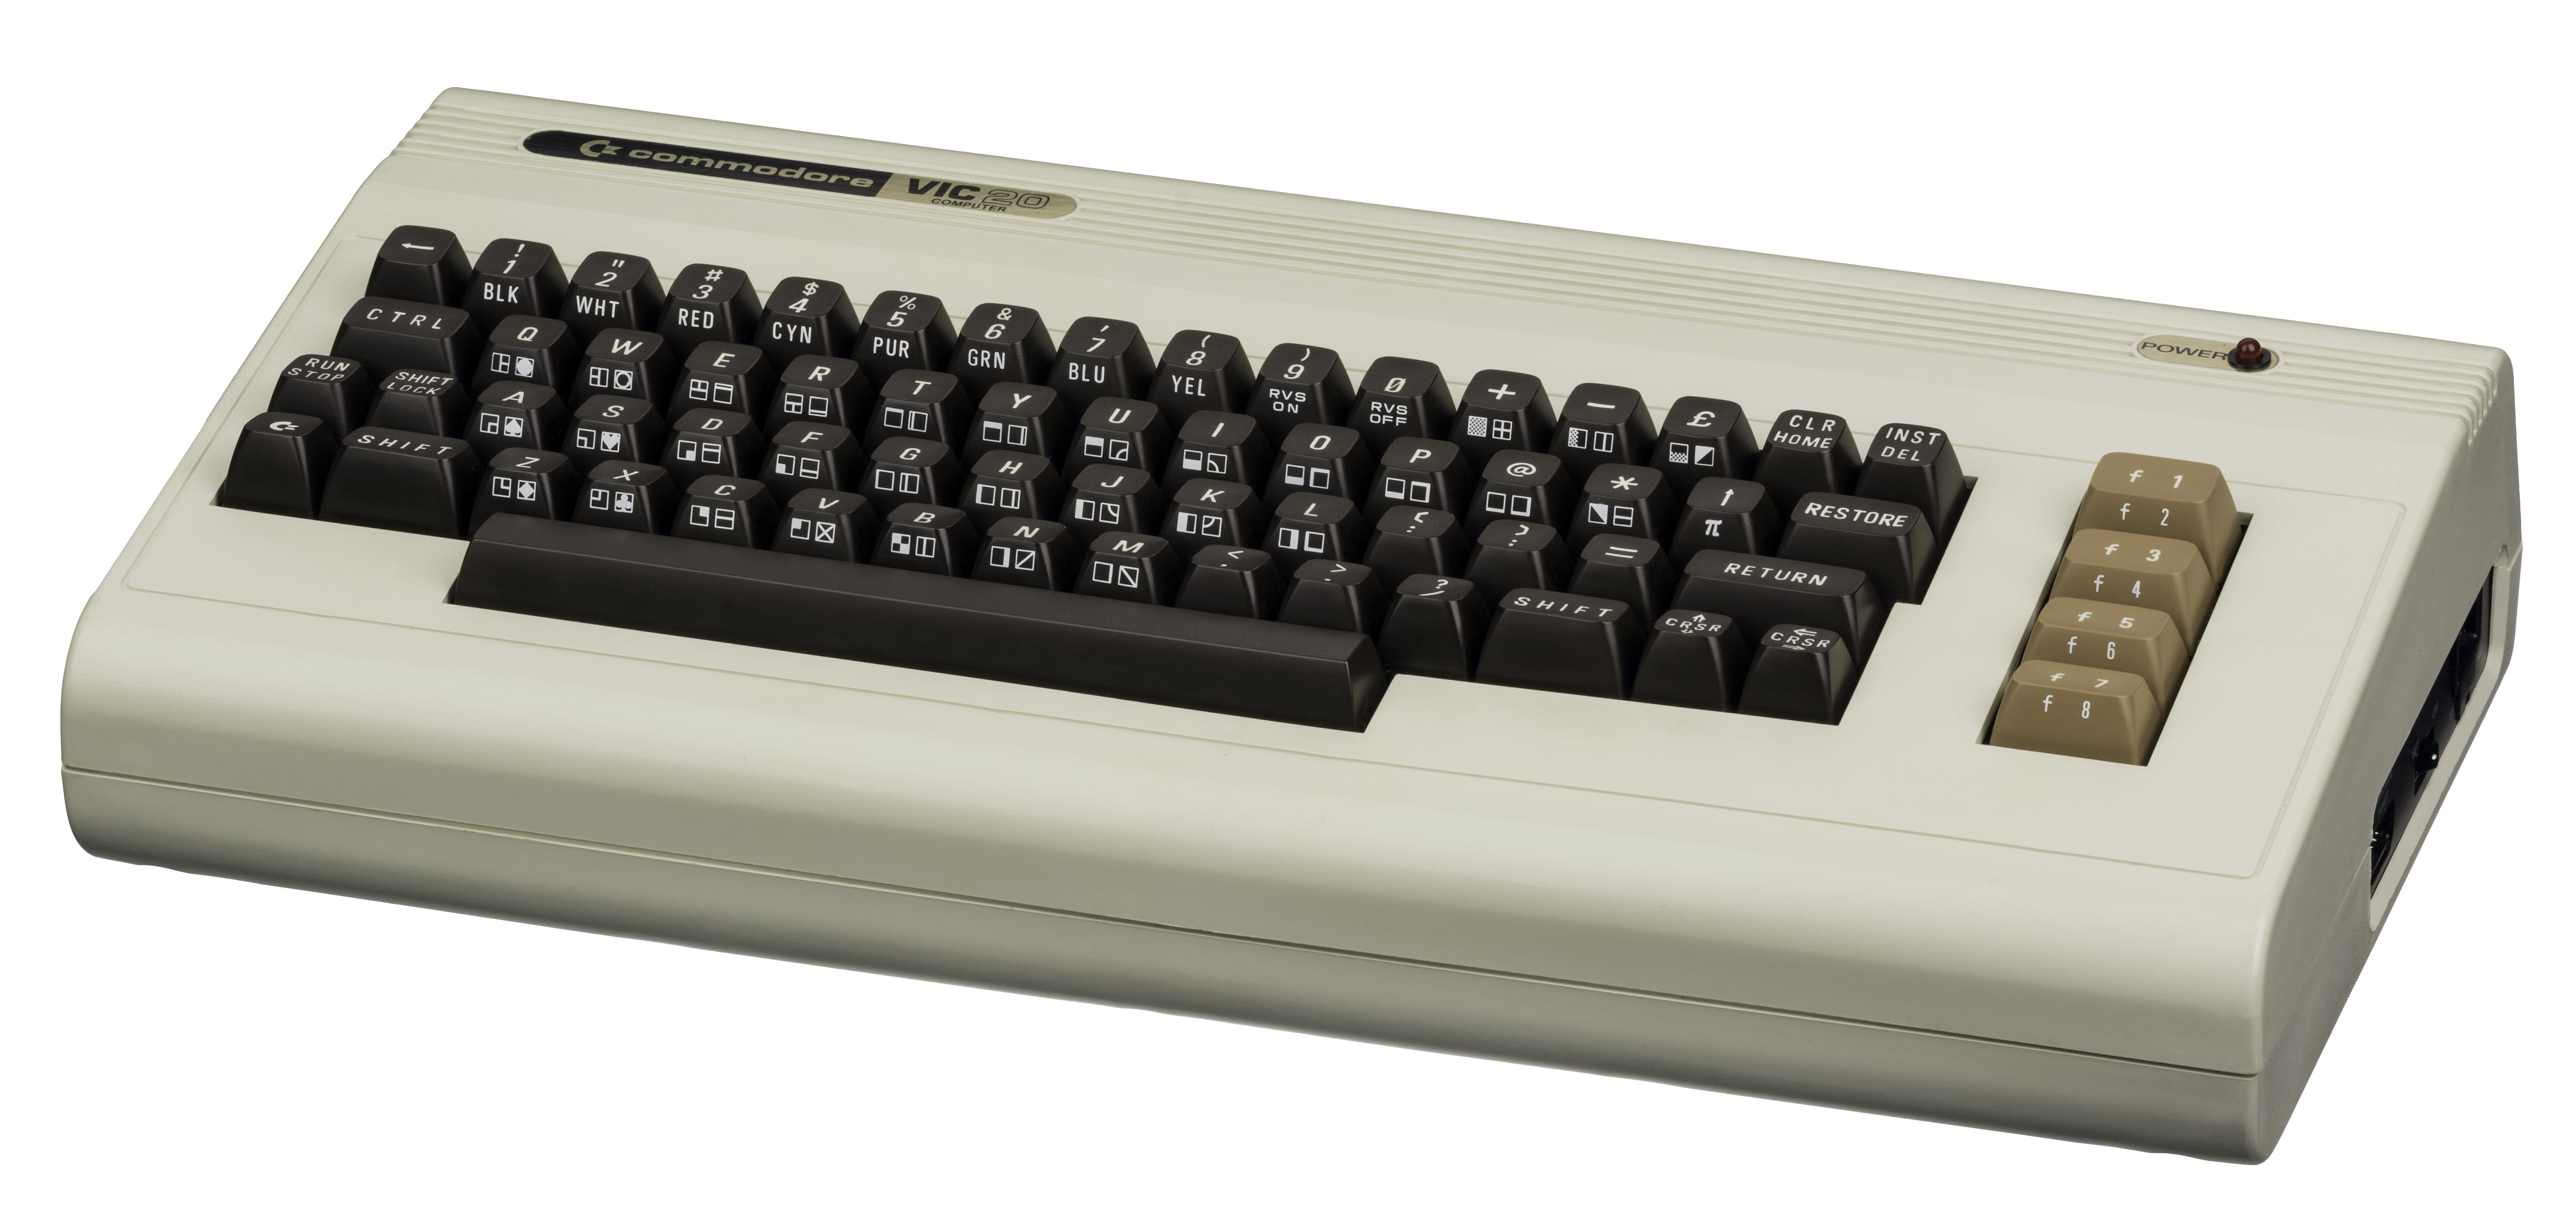 The VIC-20 could only display 22 characters per line, but people loved it for games